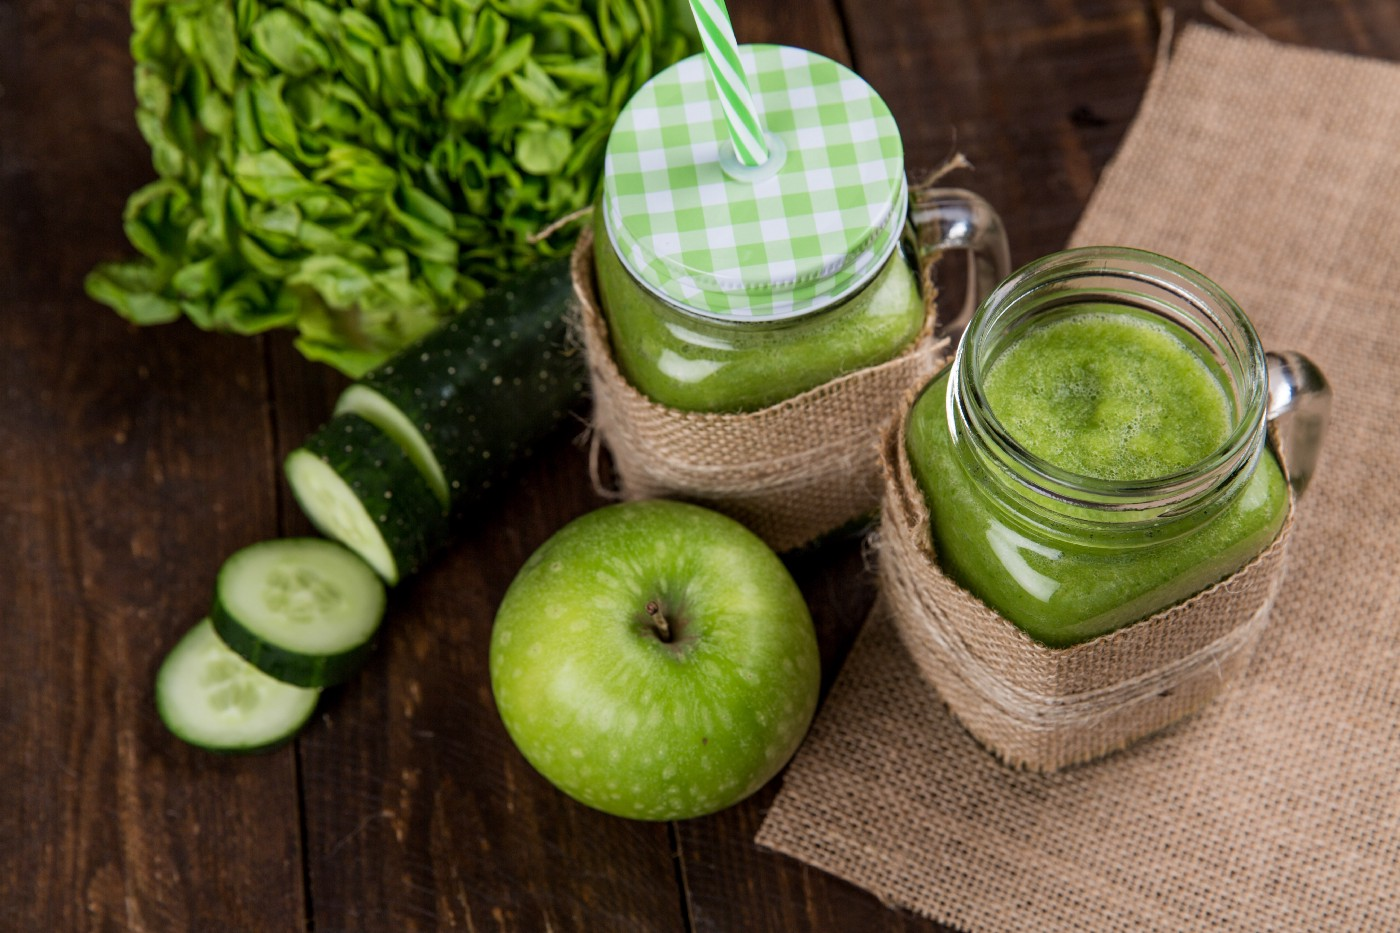 A group of objects on a kitchen table, all green. A Cucumber, apple, smoothie, and lettuce.